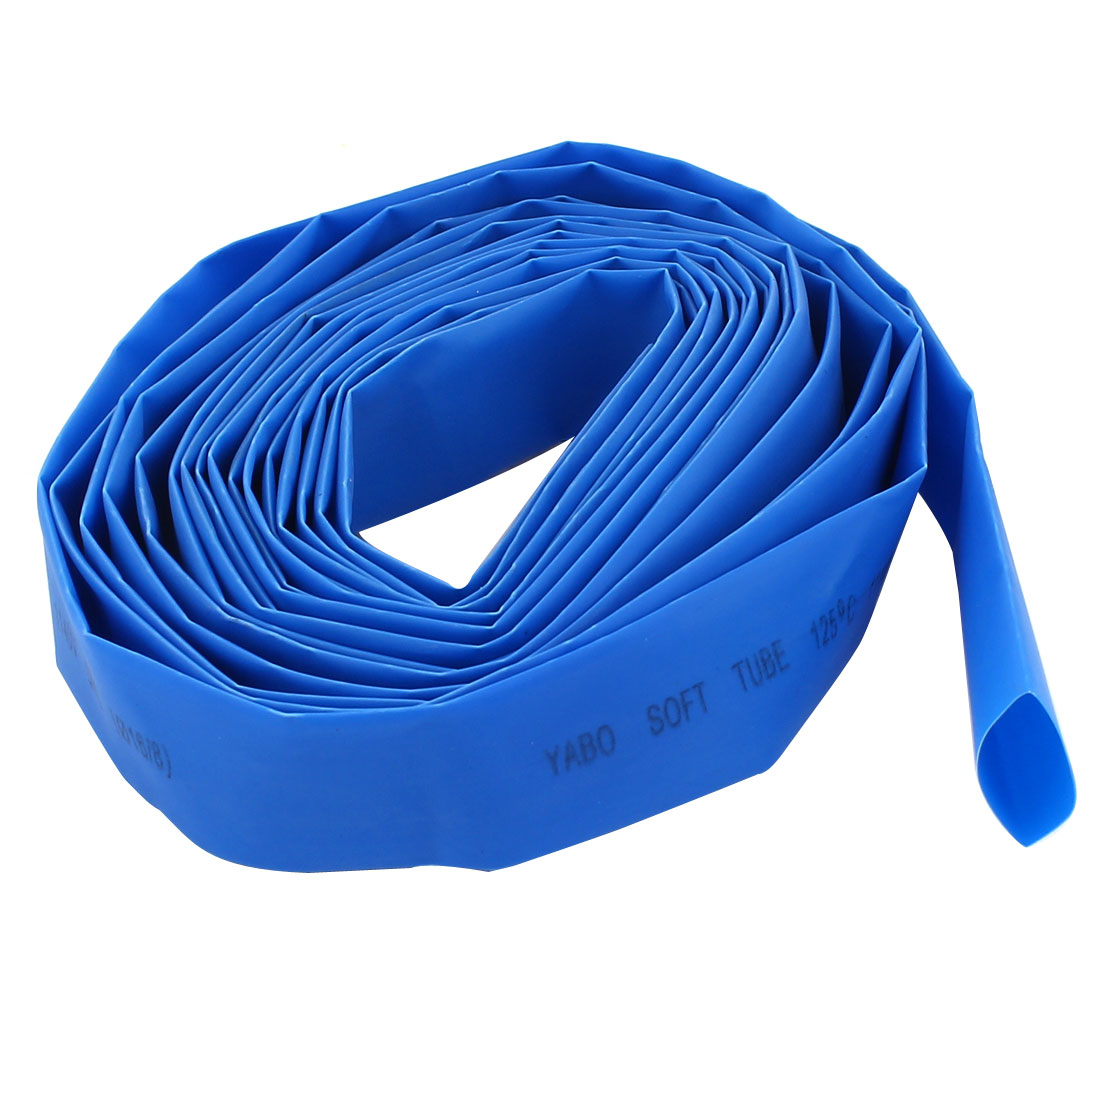 16mm Diameter Heat Shrinkable Tube Shrink Tubing Wire Wrap 5M 16Ft Blue